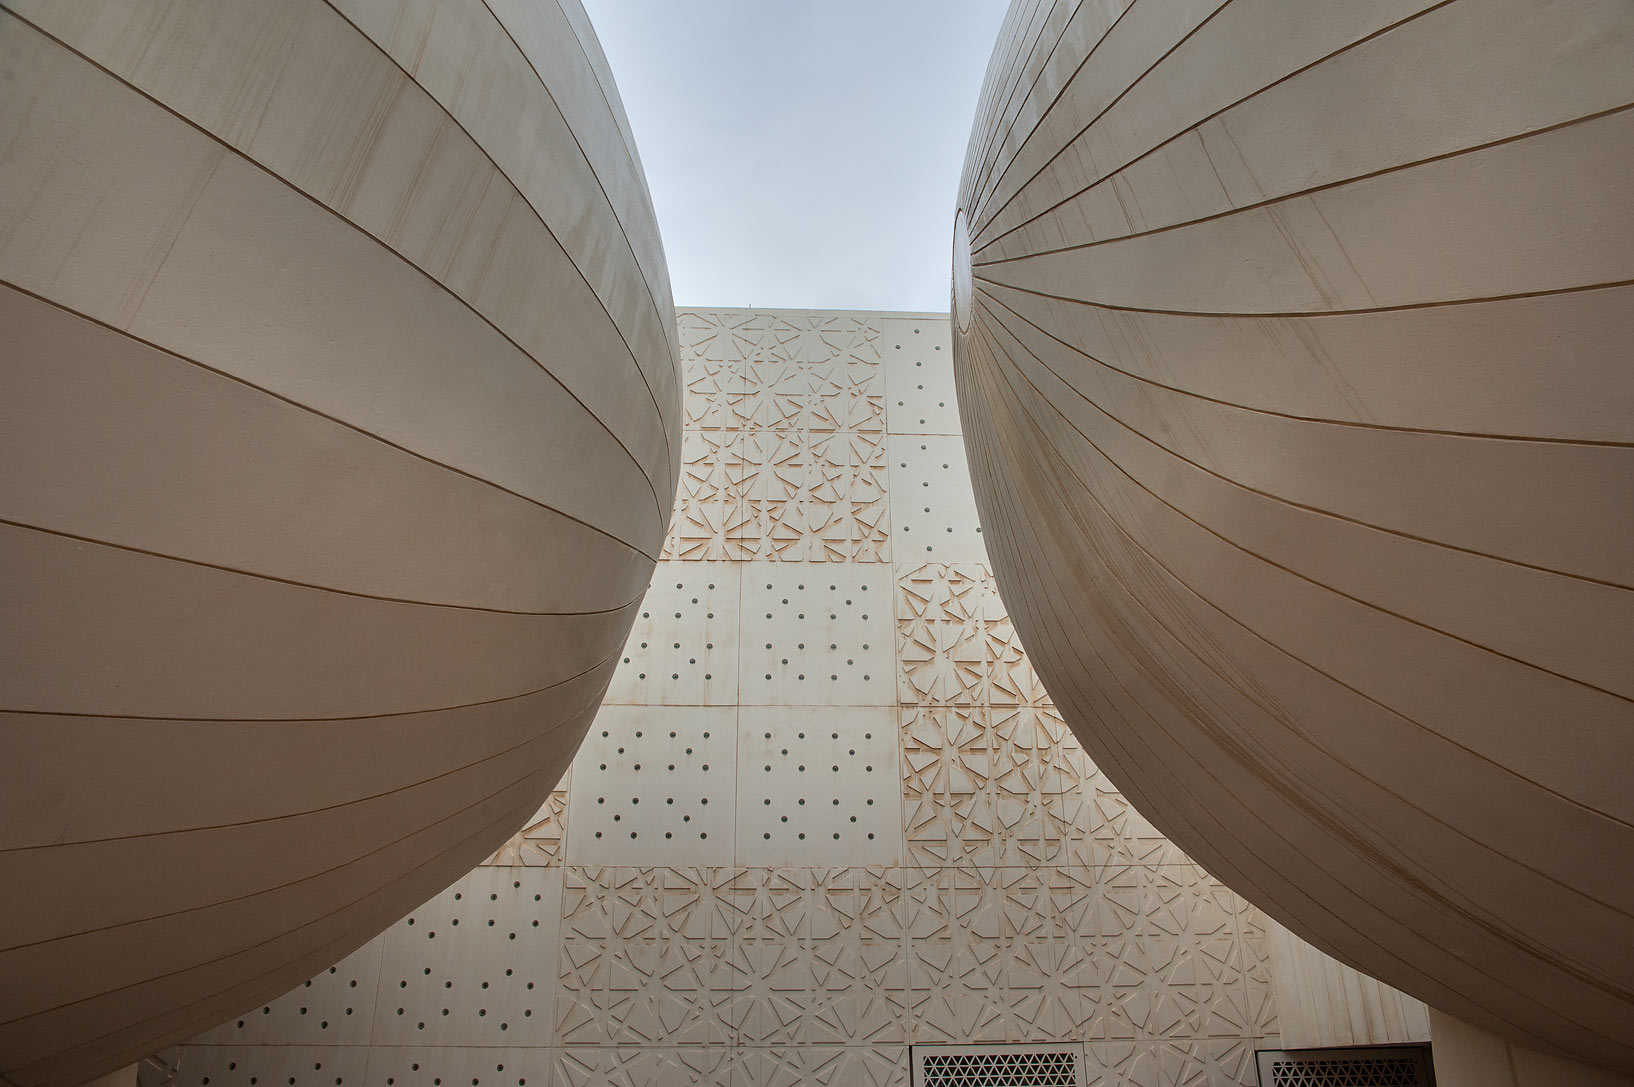 Sides of ovoid lecture halls of Weill Cornell...City campus at rain. Doha, Qatar